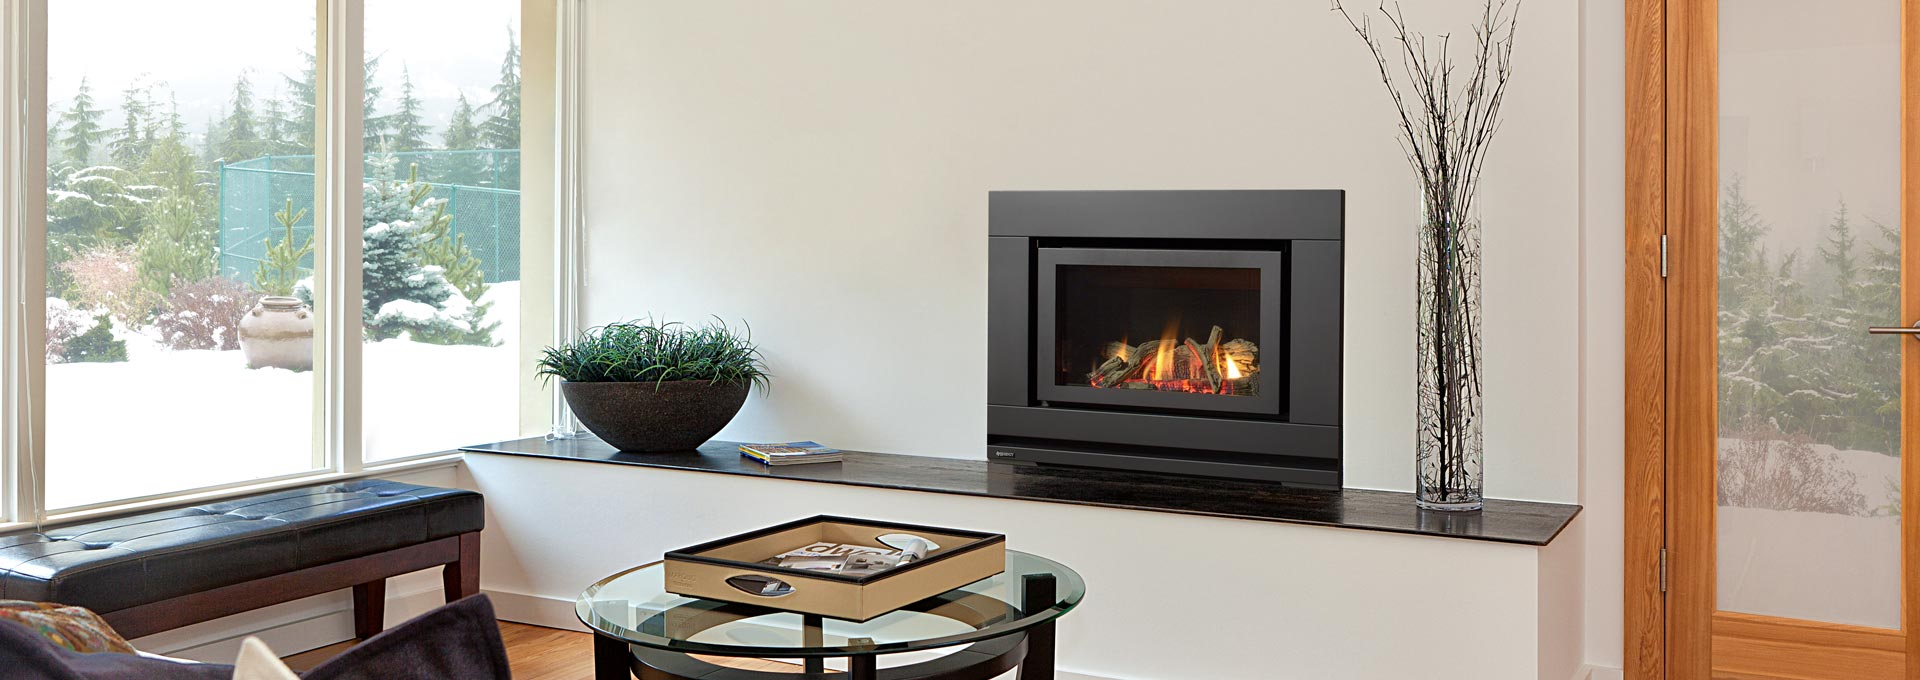 Regency Fireplace Products Australia | Gas & Wood Fireplaces